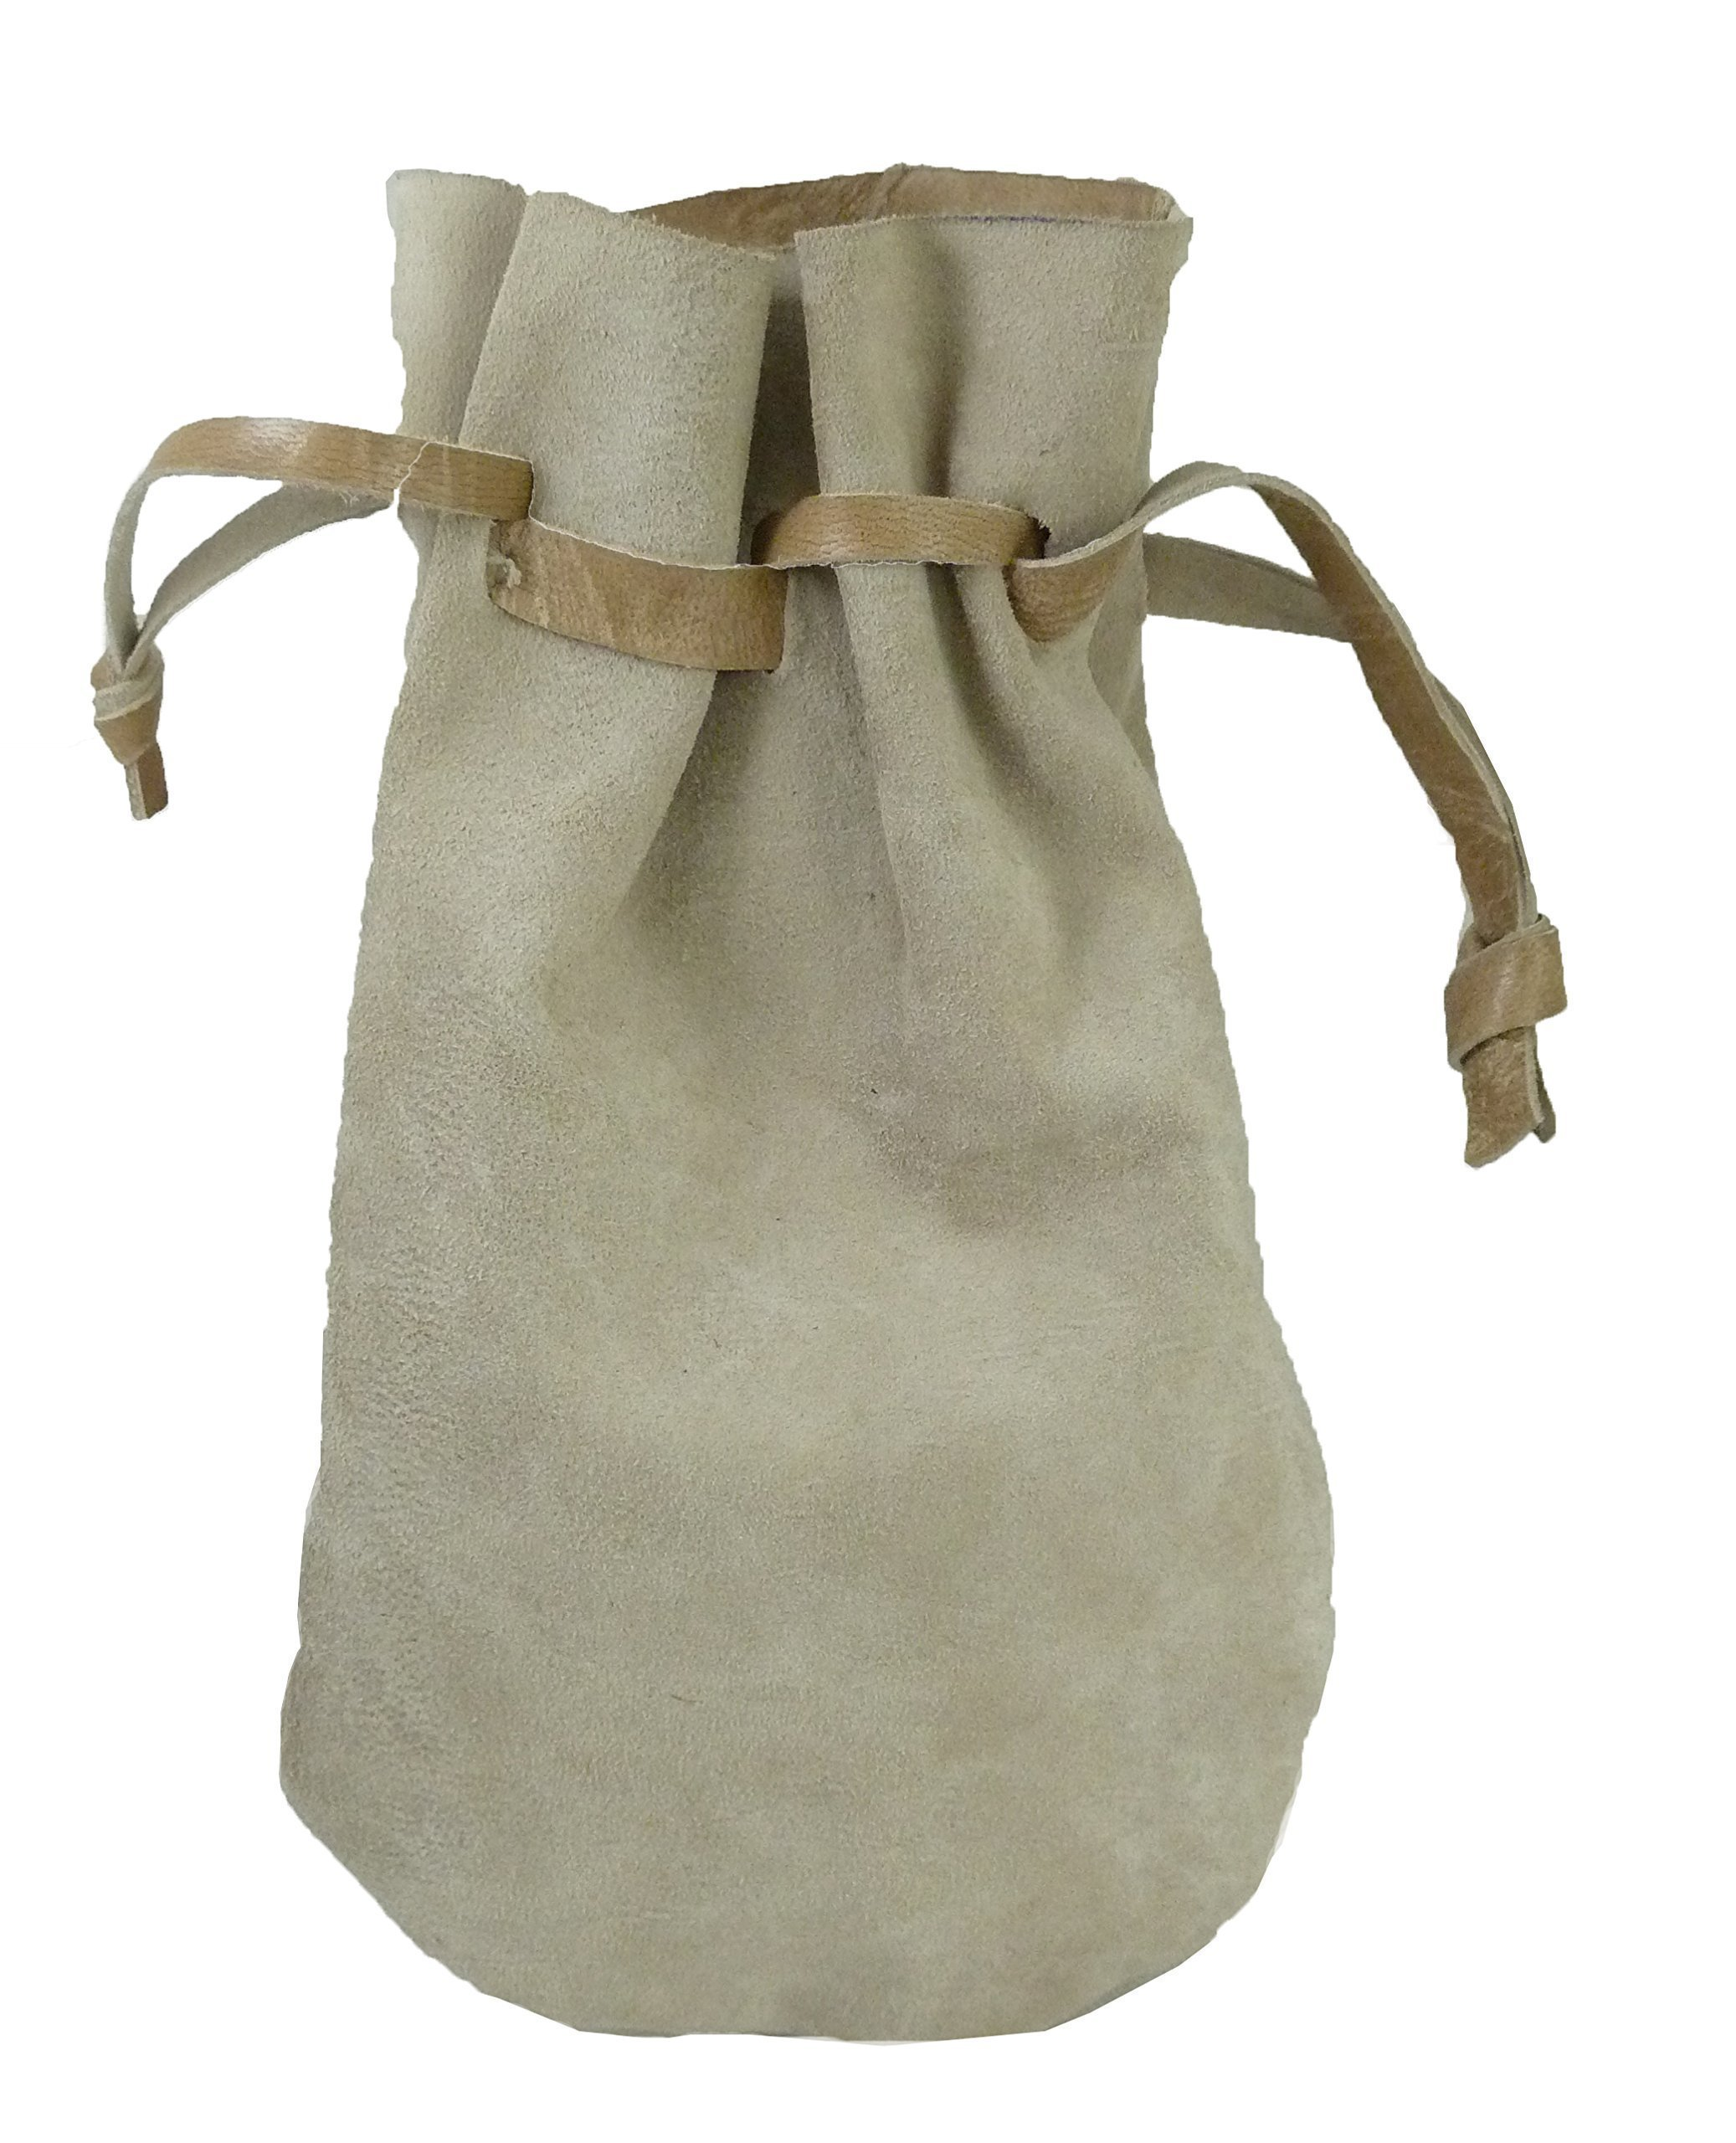 Pouch Drawstring Suede Leather 5 X 5.5 Inches, Natural